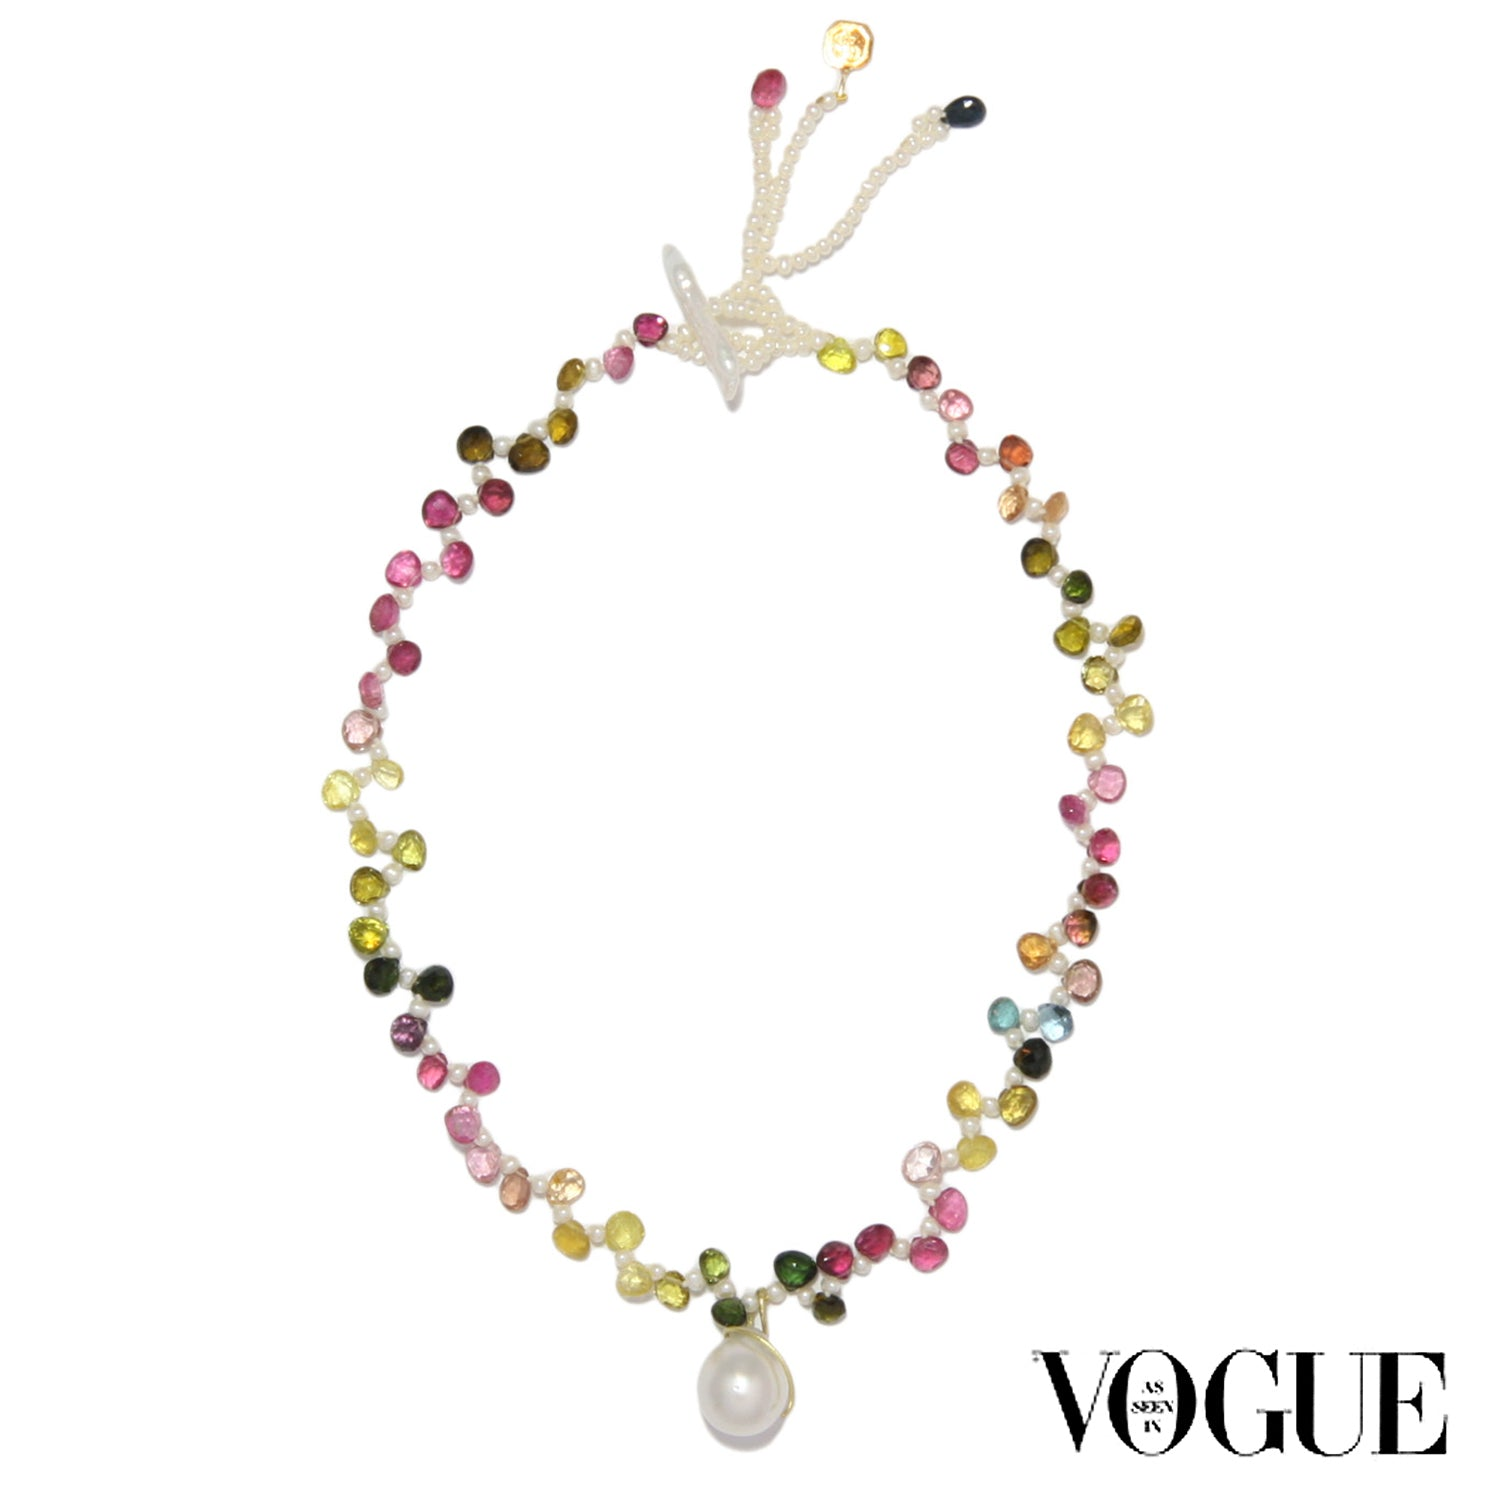 South Sea Pearl and Tourmaline 'Gift of Life' Necklace